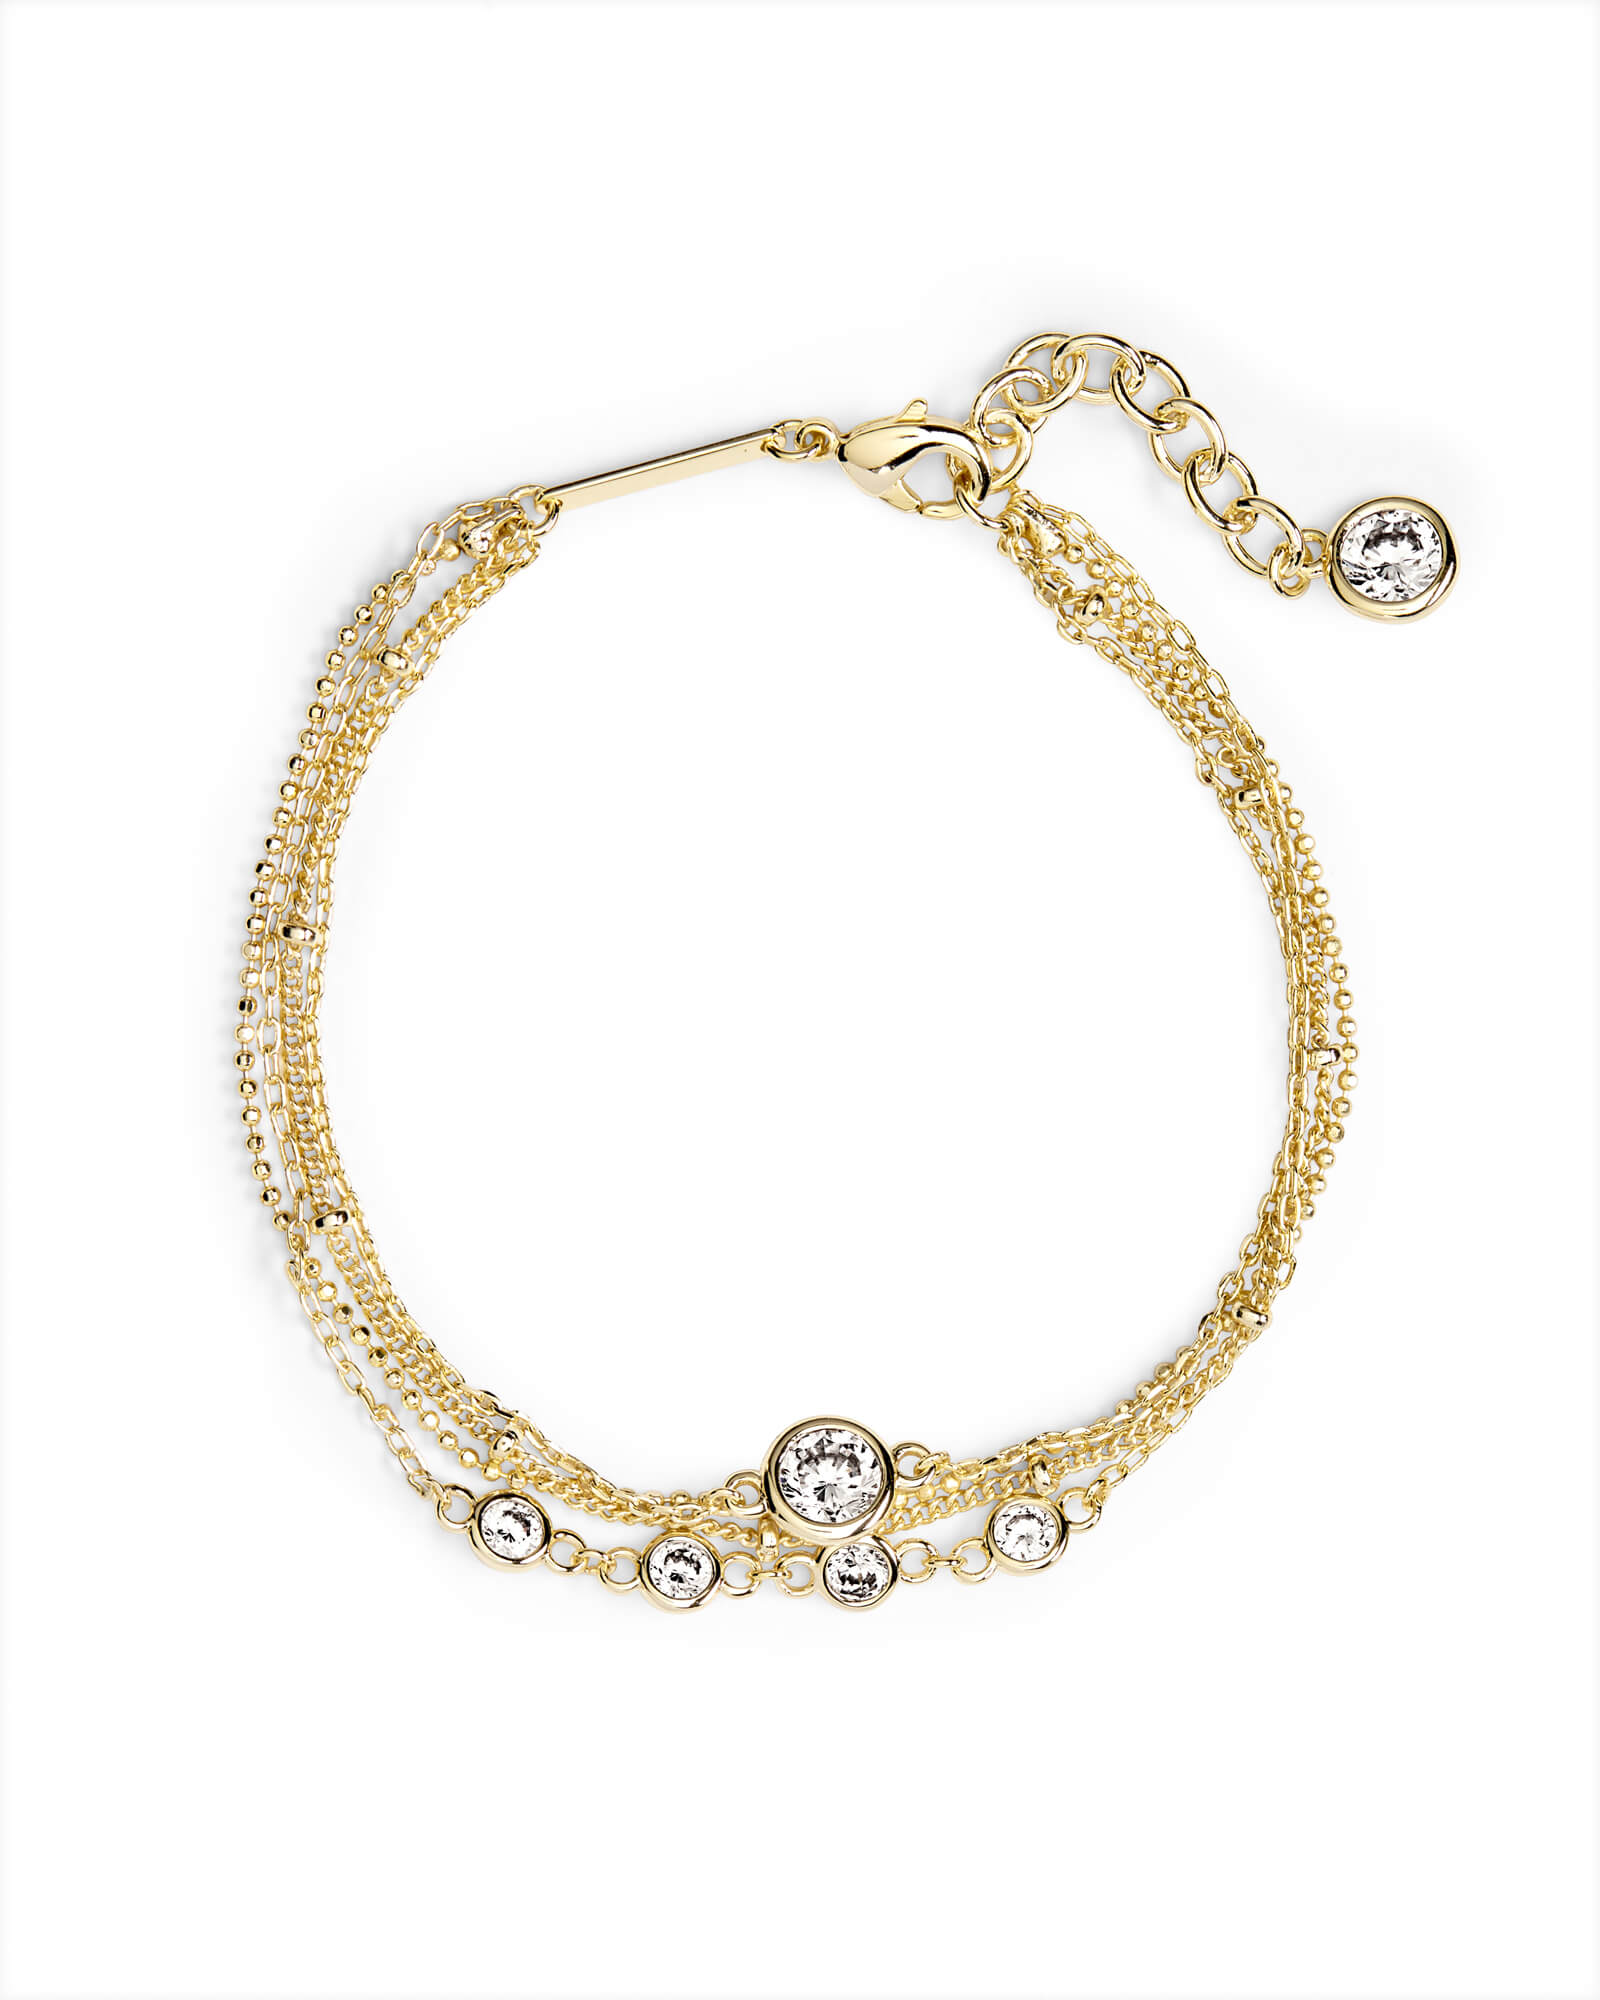 Capri Chain Bracelet in Gold